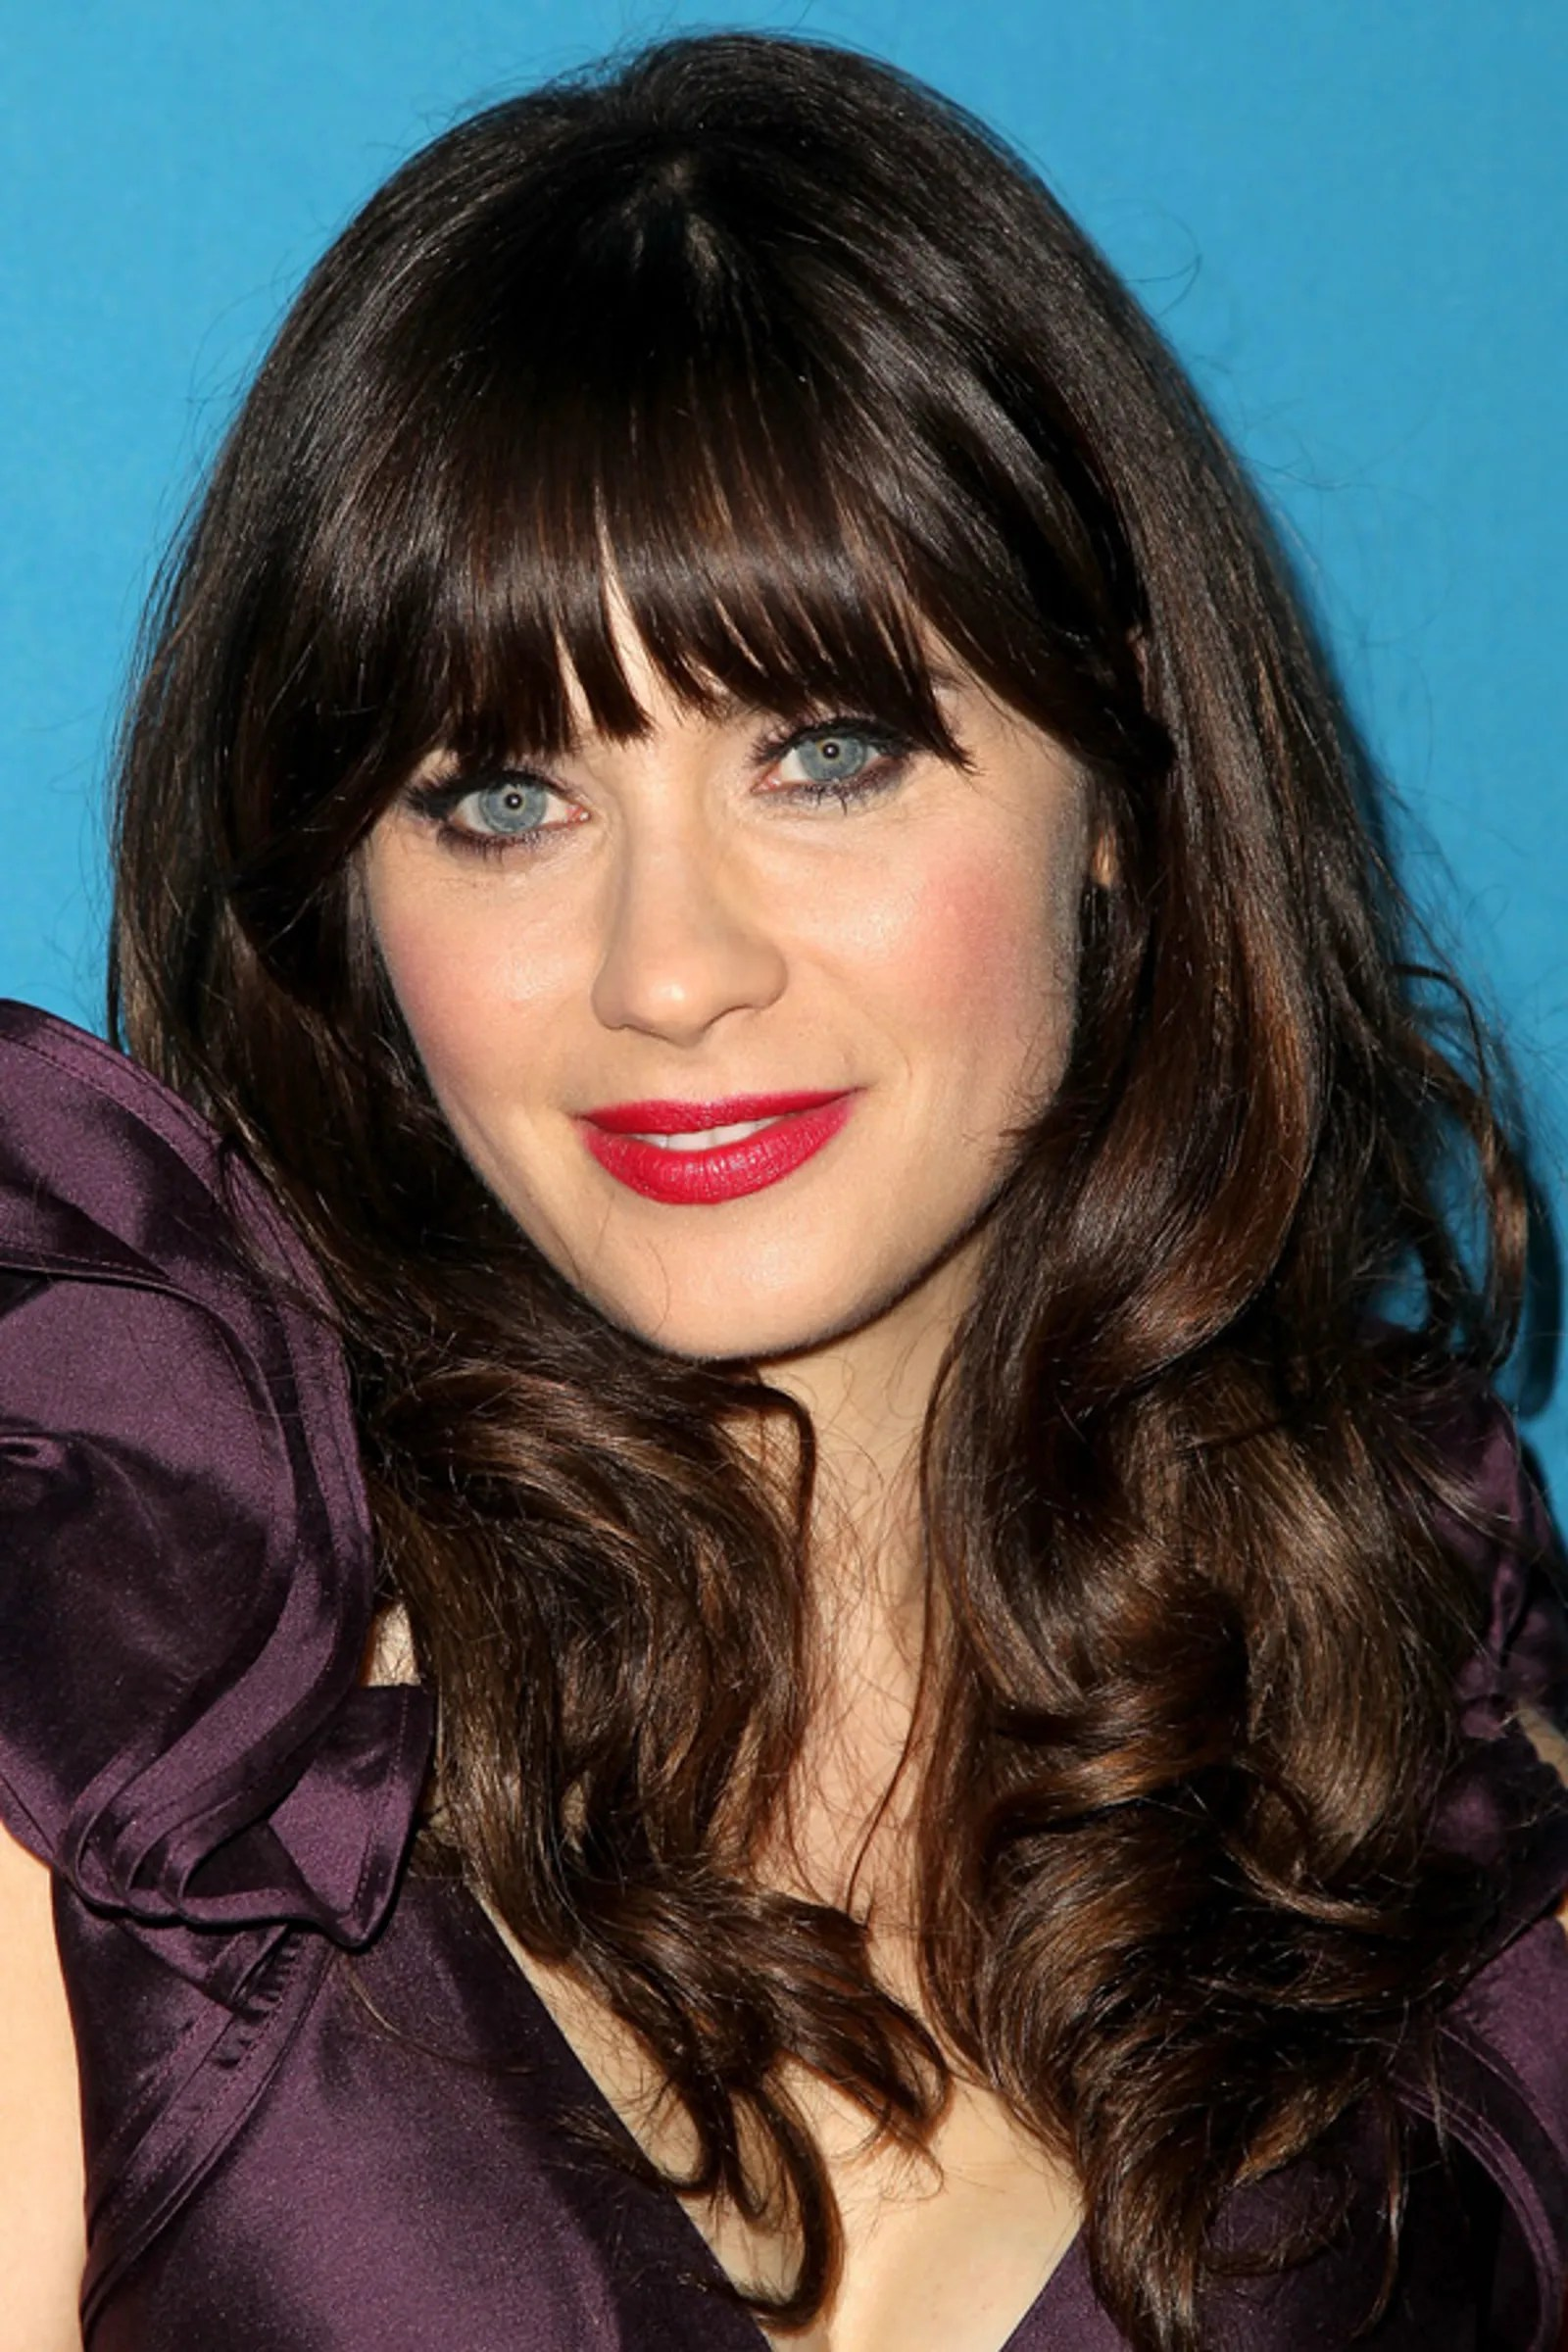 Nine Blunt Bangs Ideas For Your Next Haircut From The